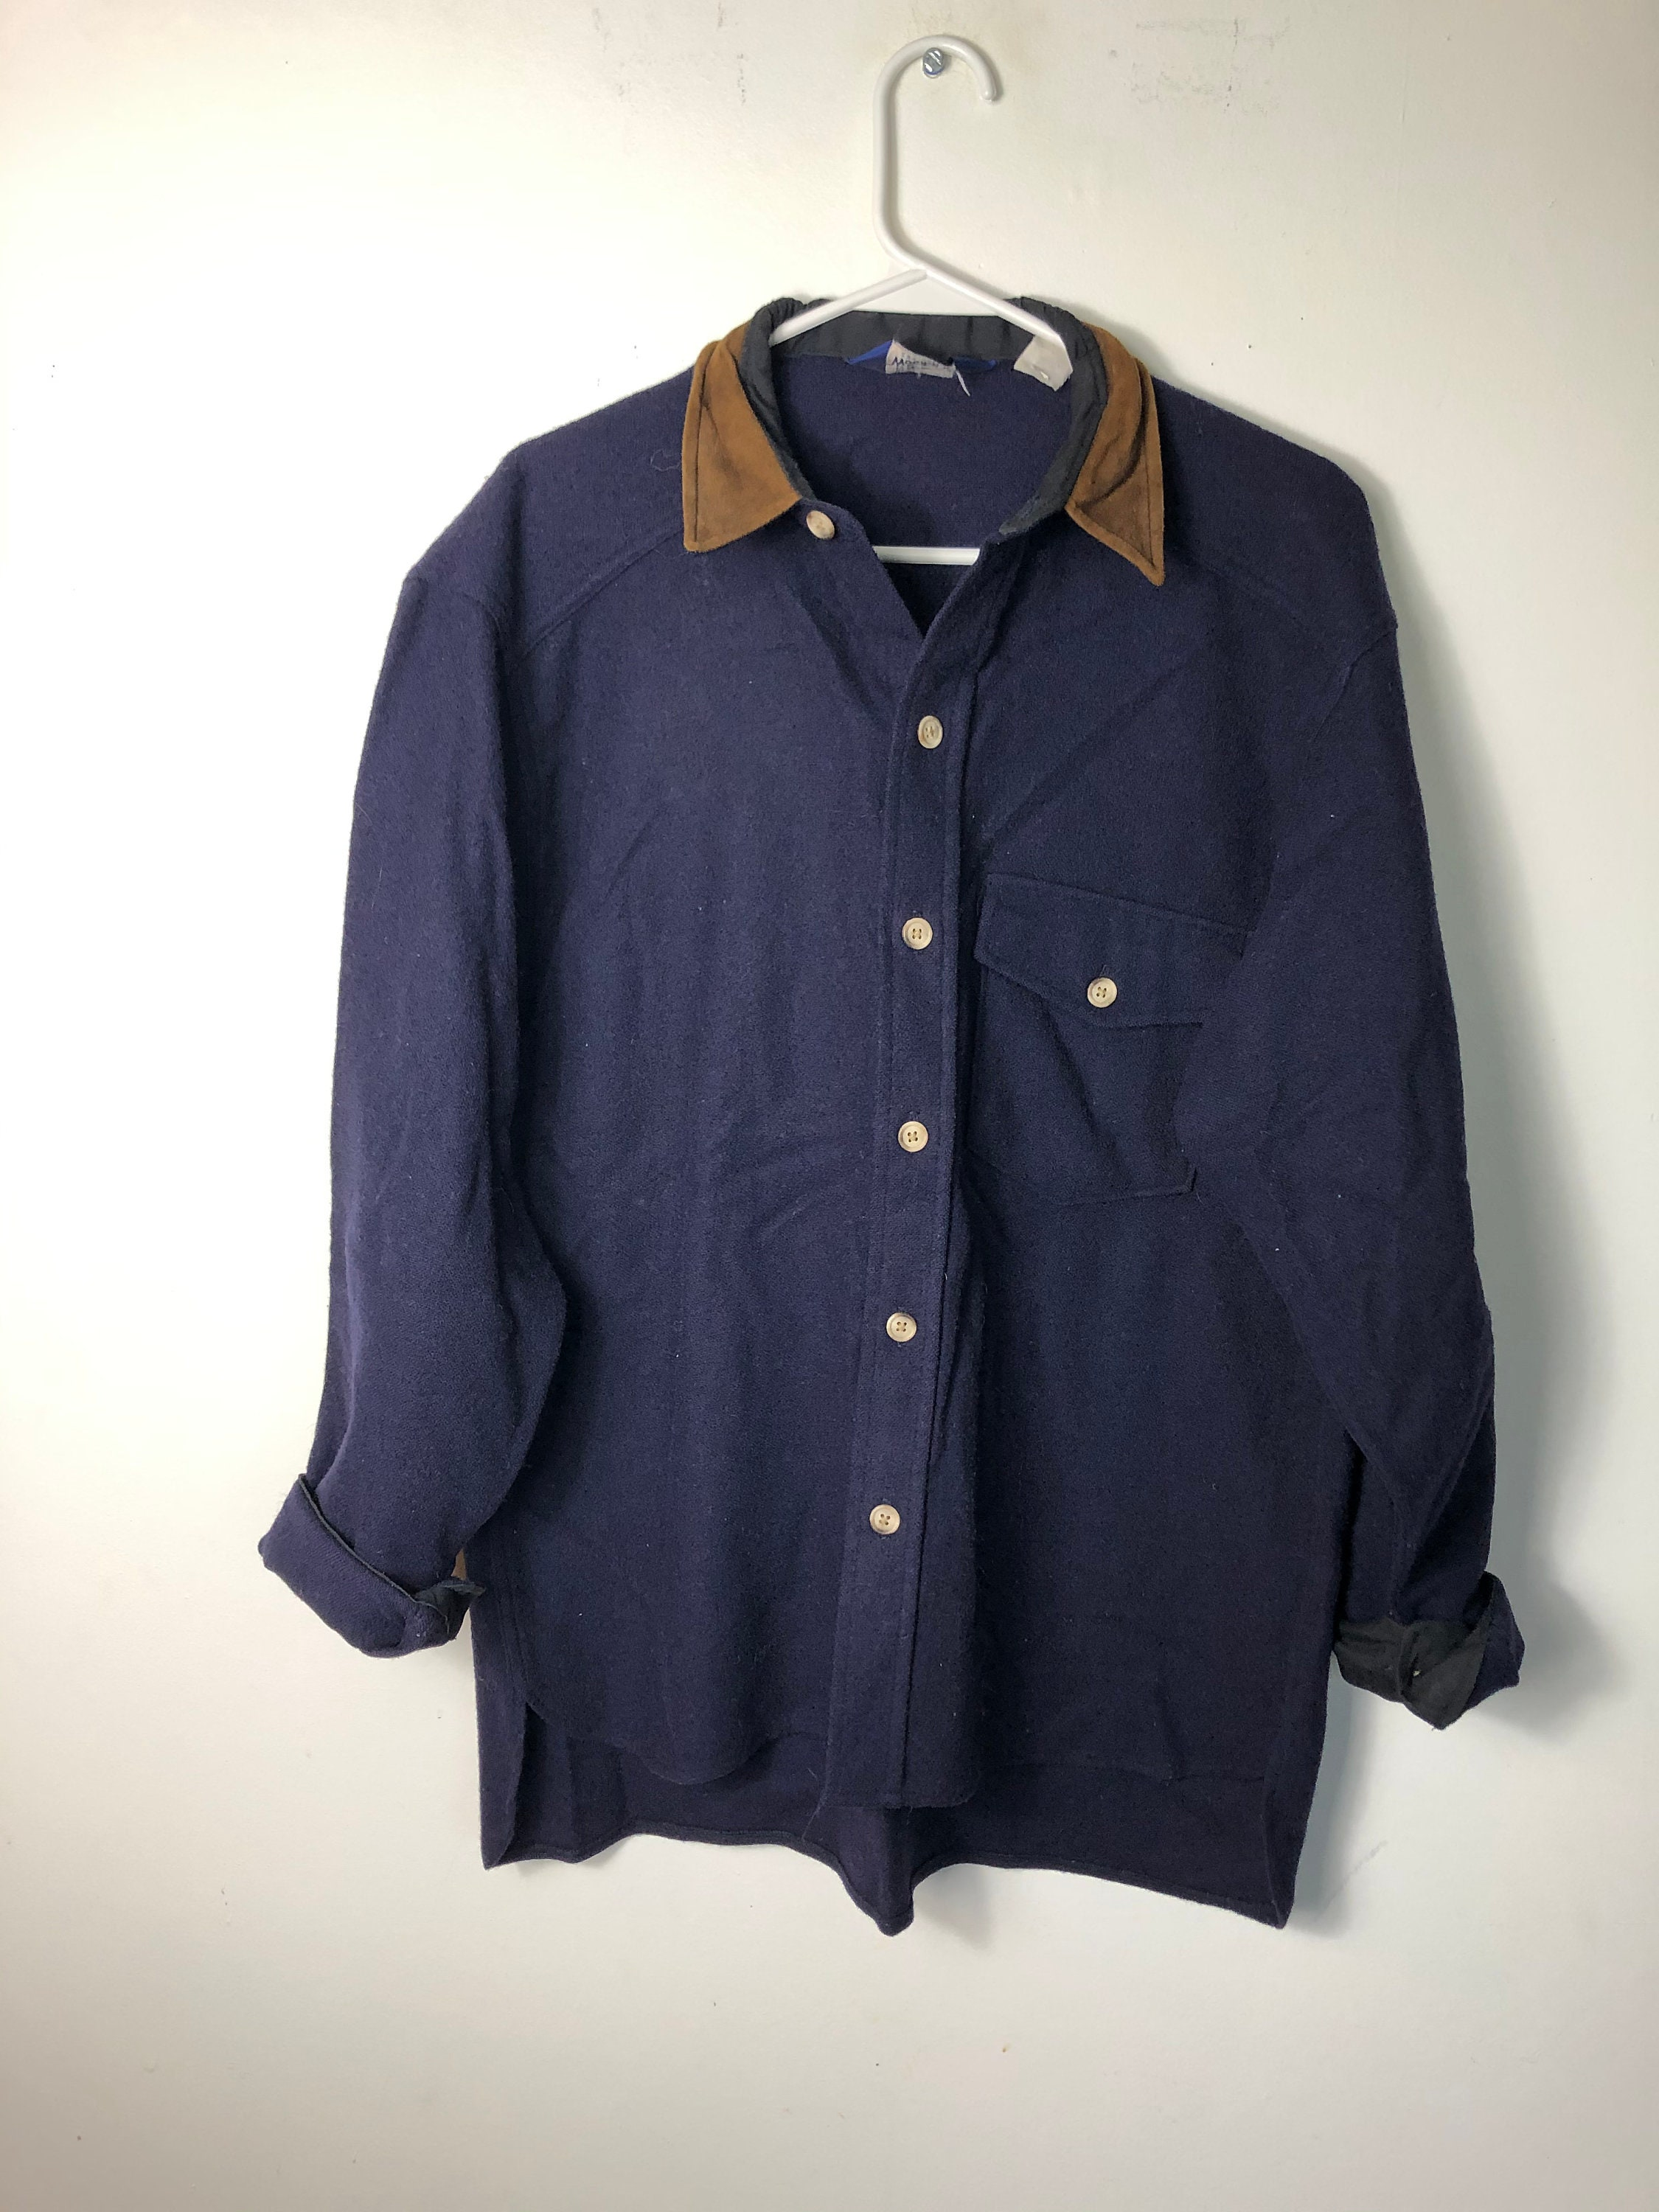 1970s Mens Shirt Styles – Vintage 70s Shirts for Guys Vintage Flannel Woolrich Wool Button Down Shirt Elbow Pads Navy Blue 70S 1970S Hippie Cozy Mens Bin13 $0.00 AT vintagedancer.com